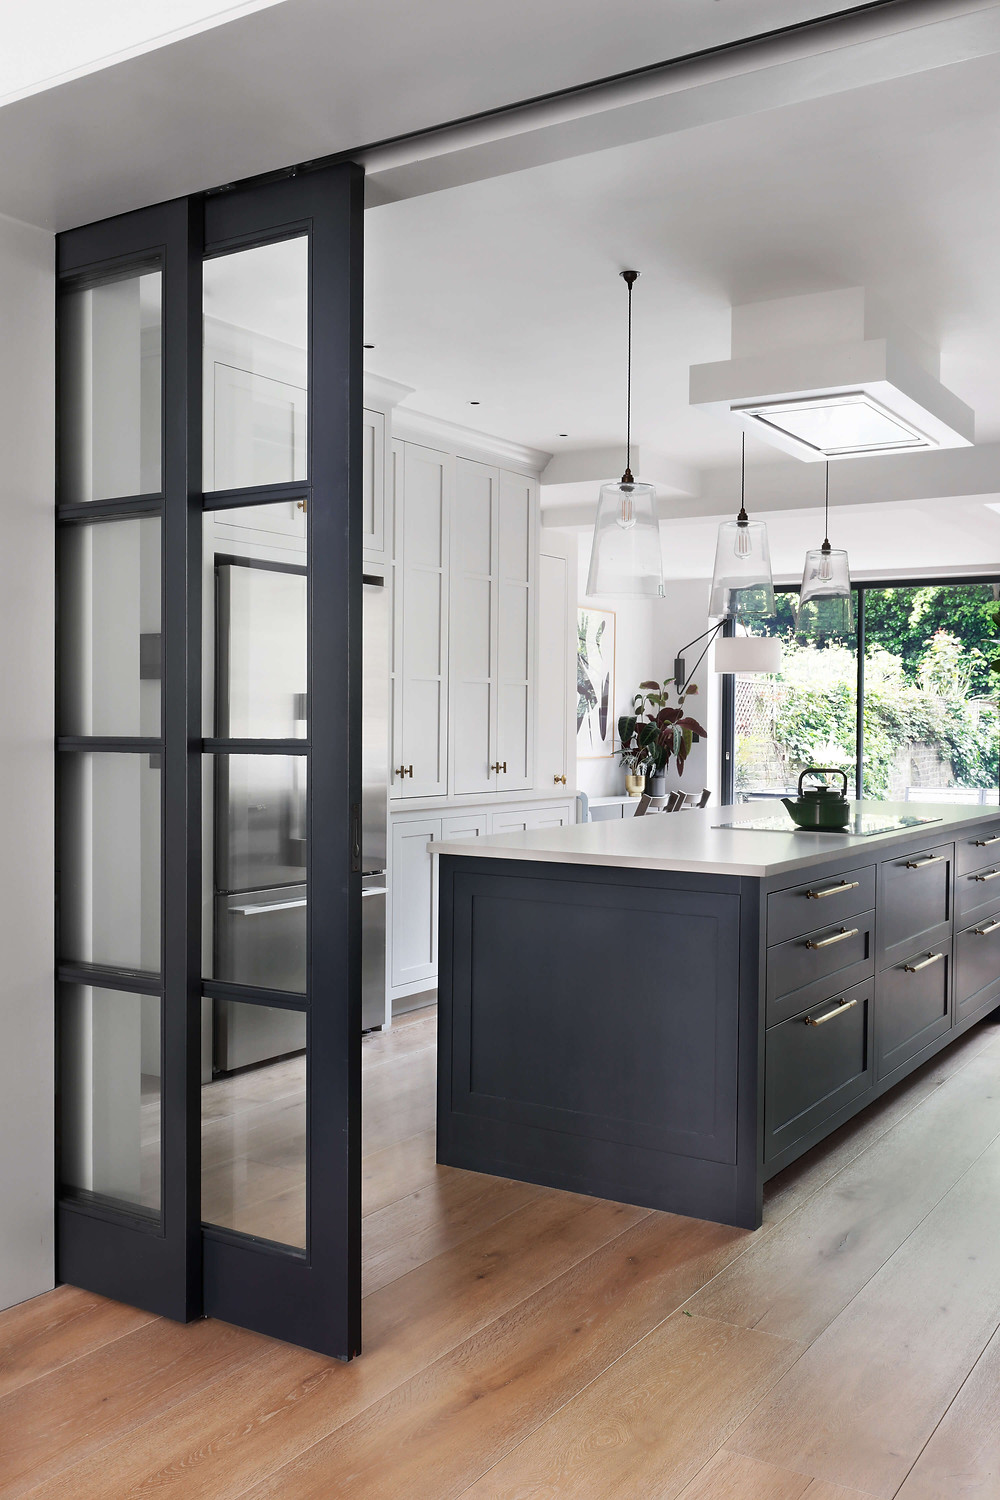 bespoke sliding door at the open plan kitchen in Maida Vale, West London, designed by Catherine Wilman